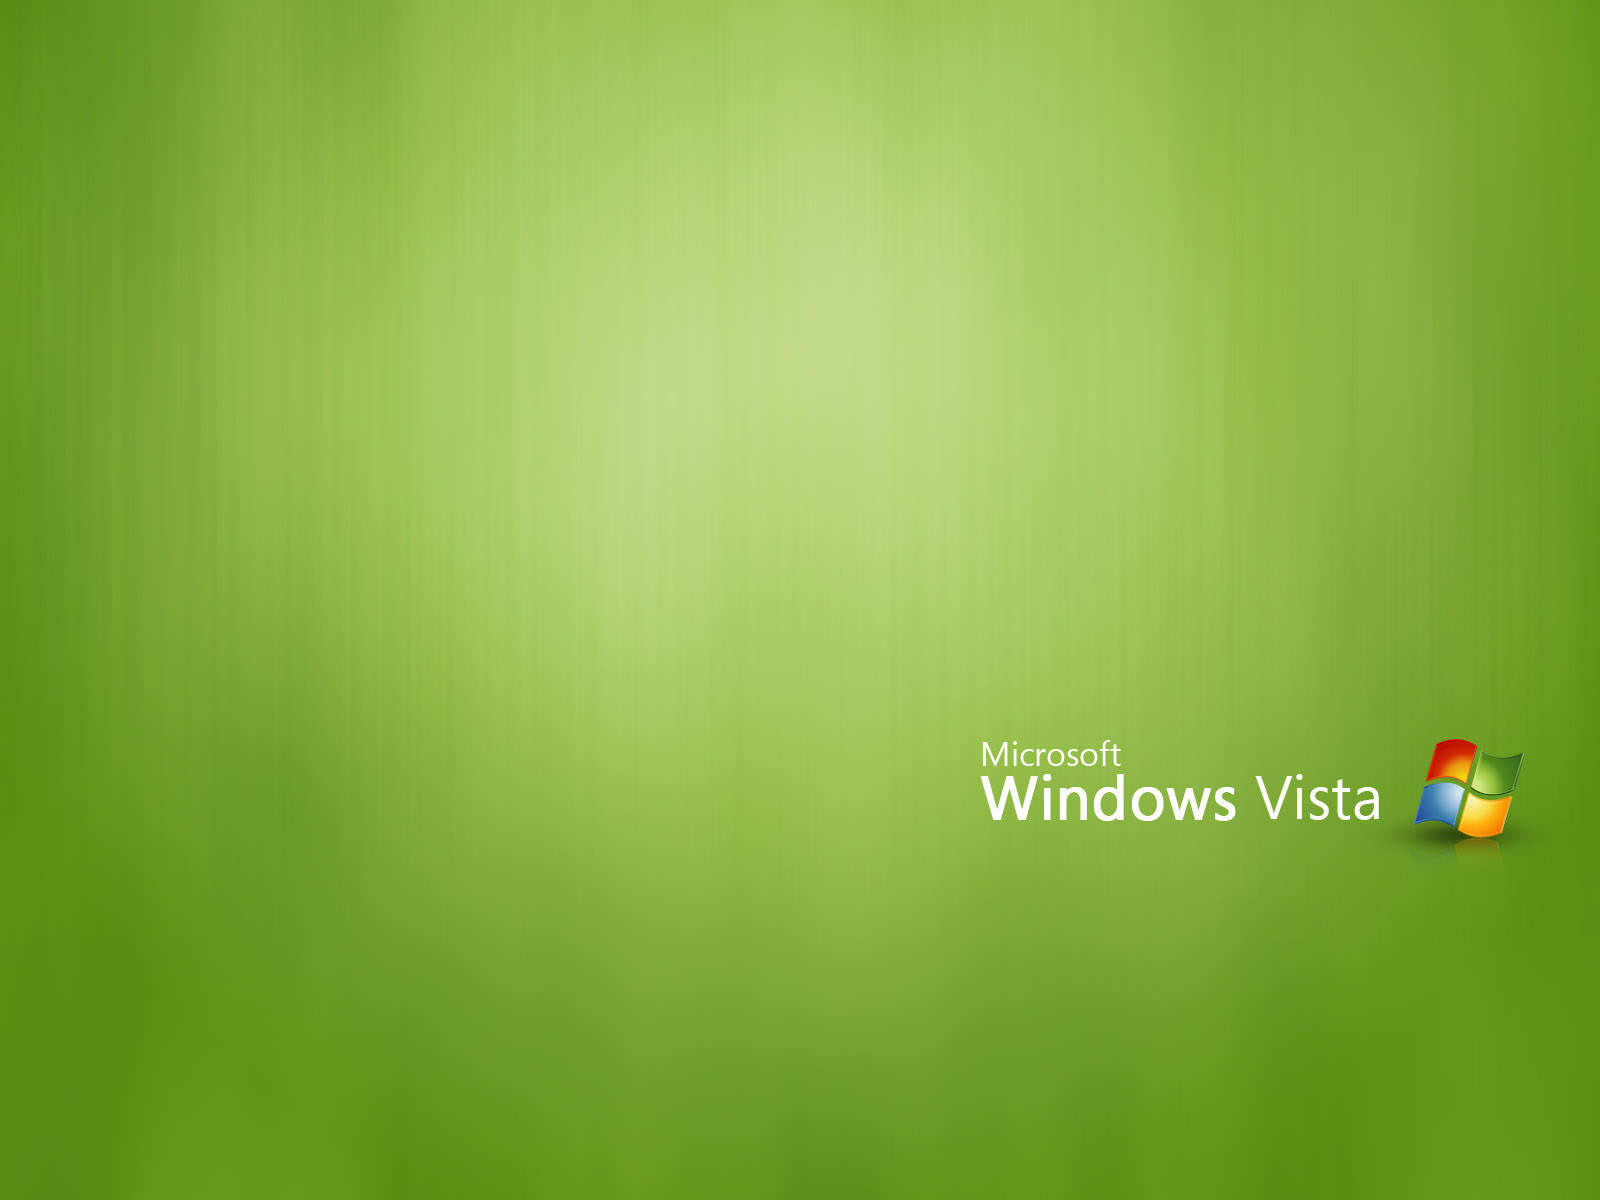 Vista go green wallpaper